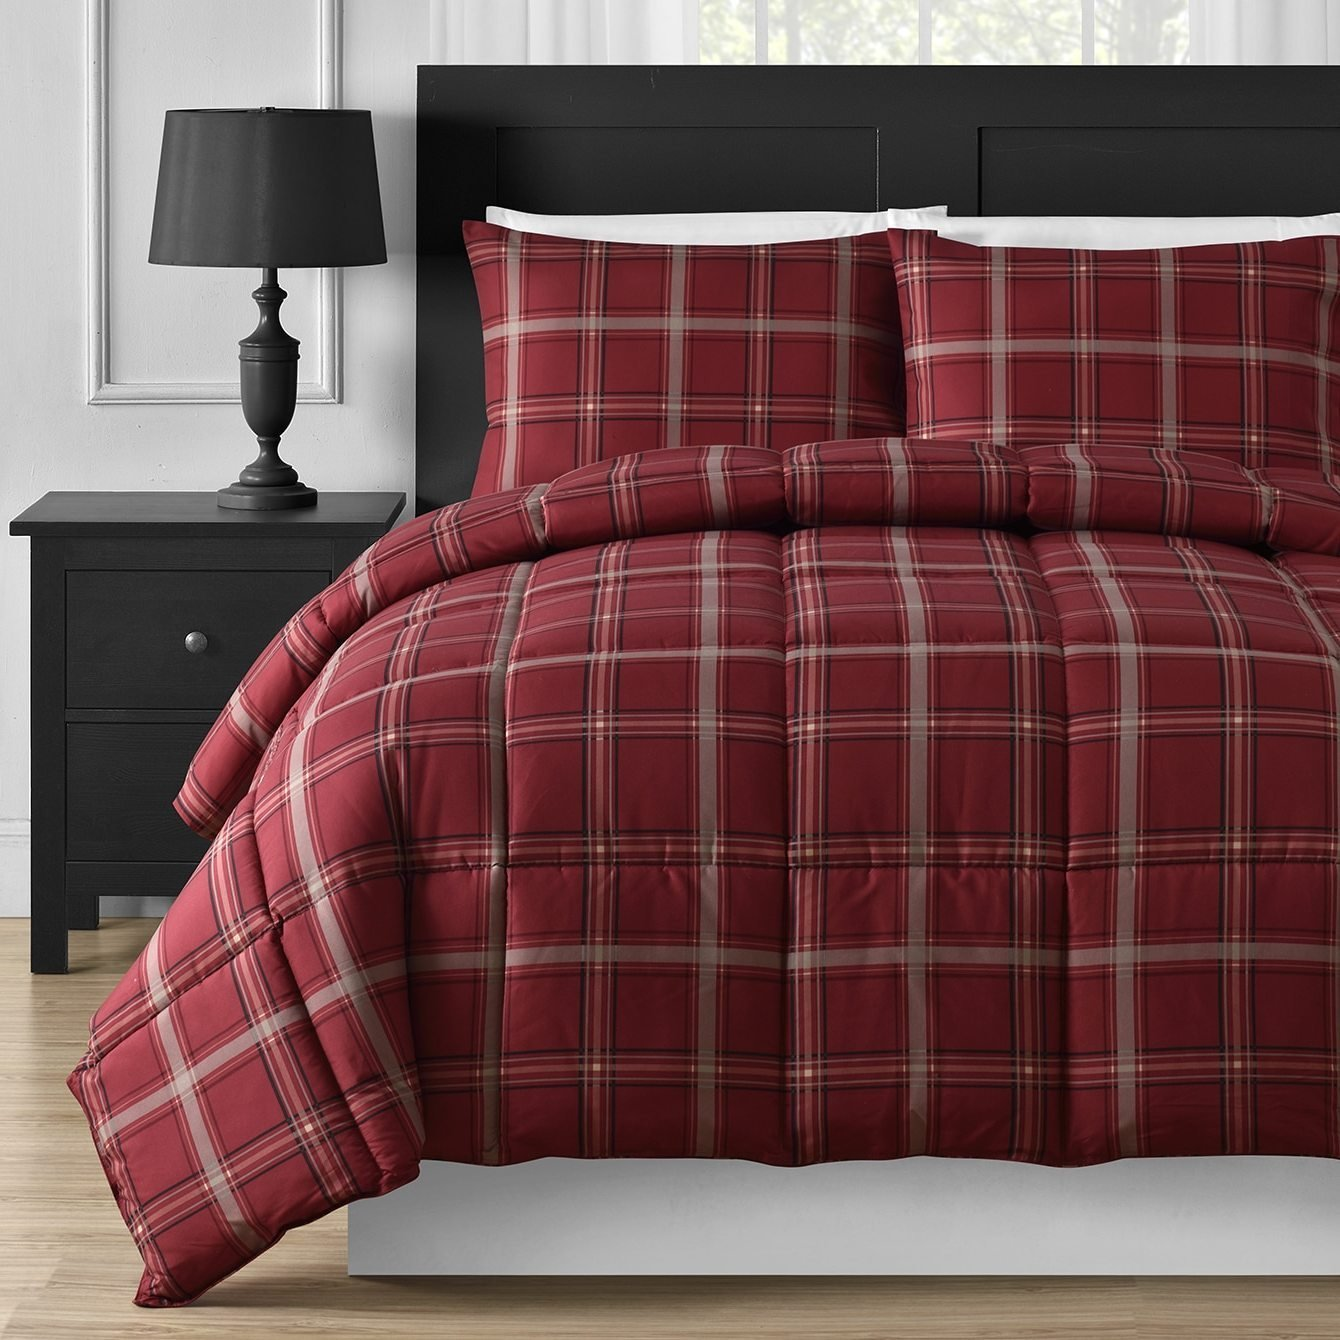 D&H 3 Piece Light Grey Red Plaid Comforter Queen Set, Cozy Warm Cabin Themed Bedding Checked Lumberjack Pattern Lodge Southwest Tartan Madras Cottage Rustic, Modern Polyester